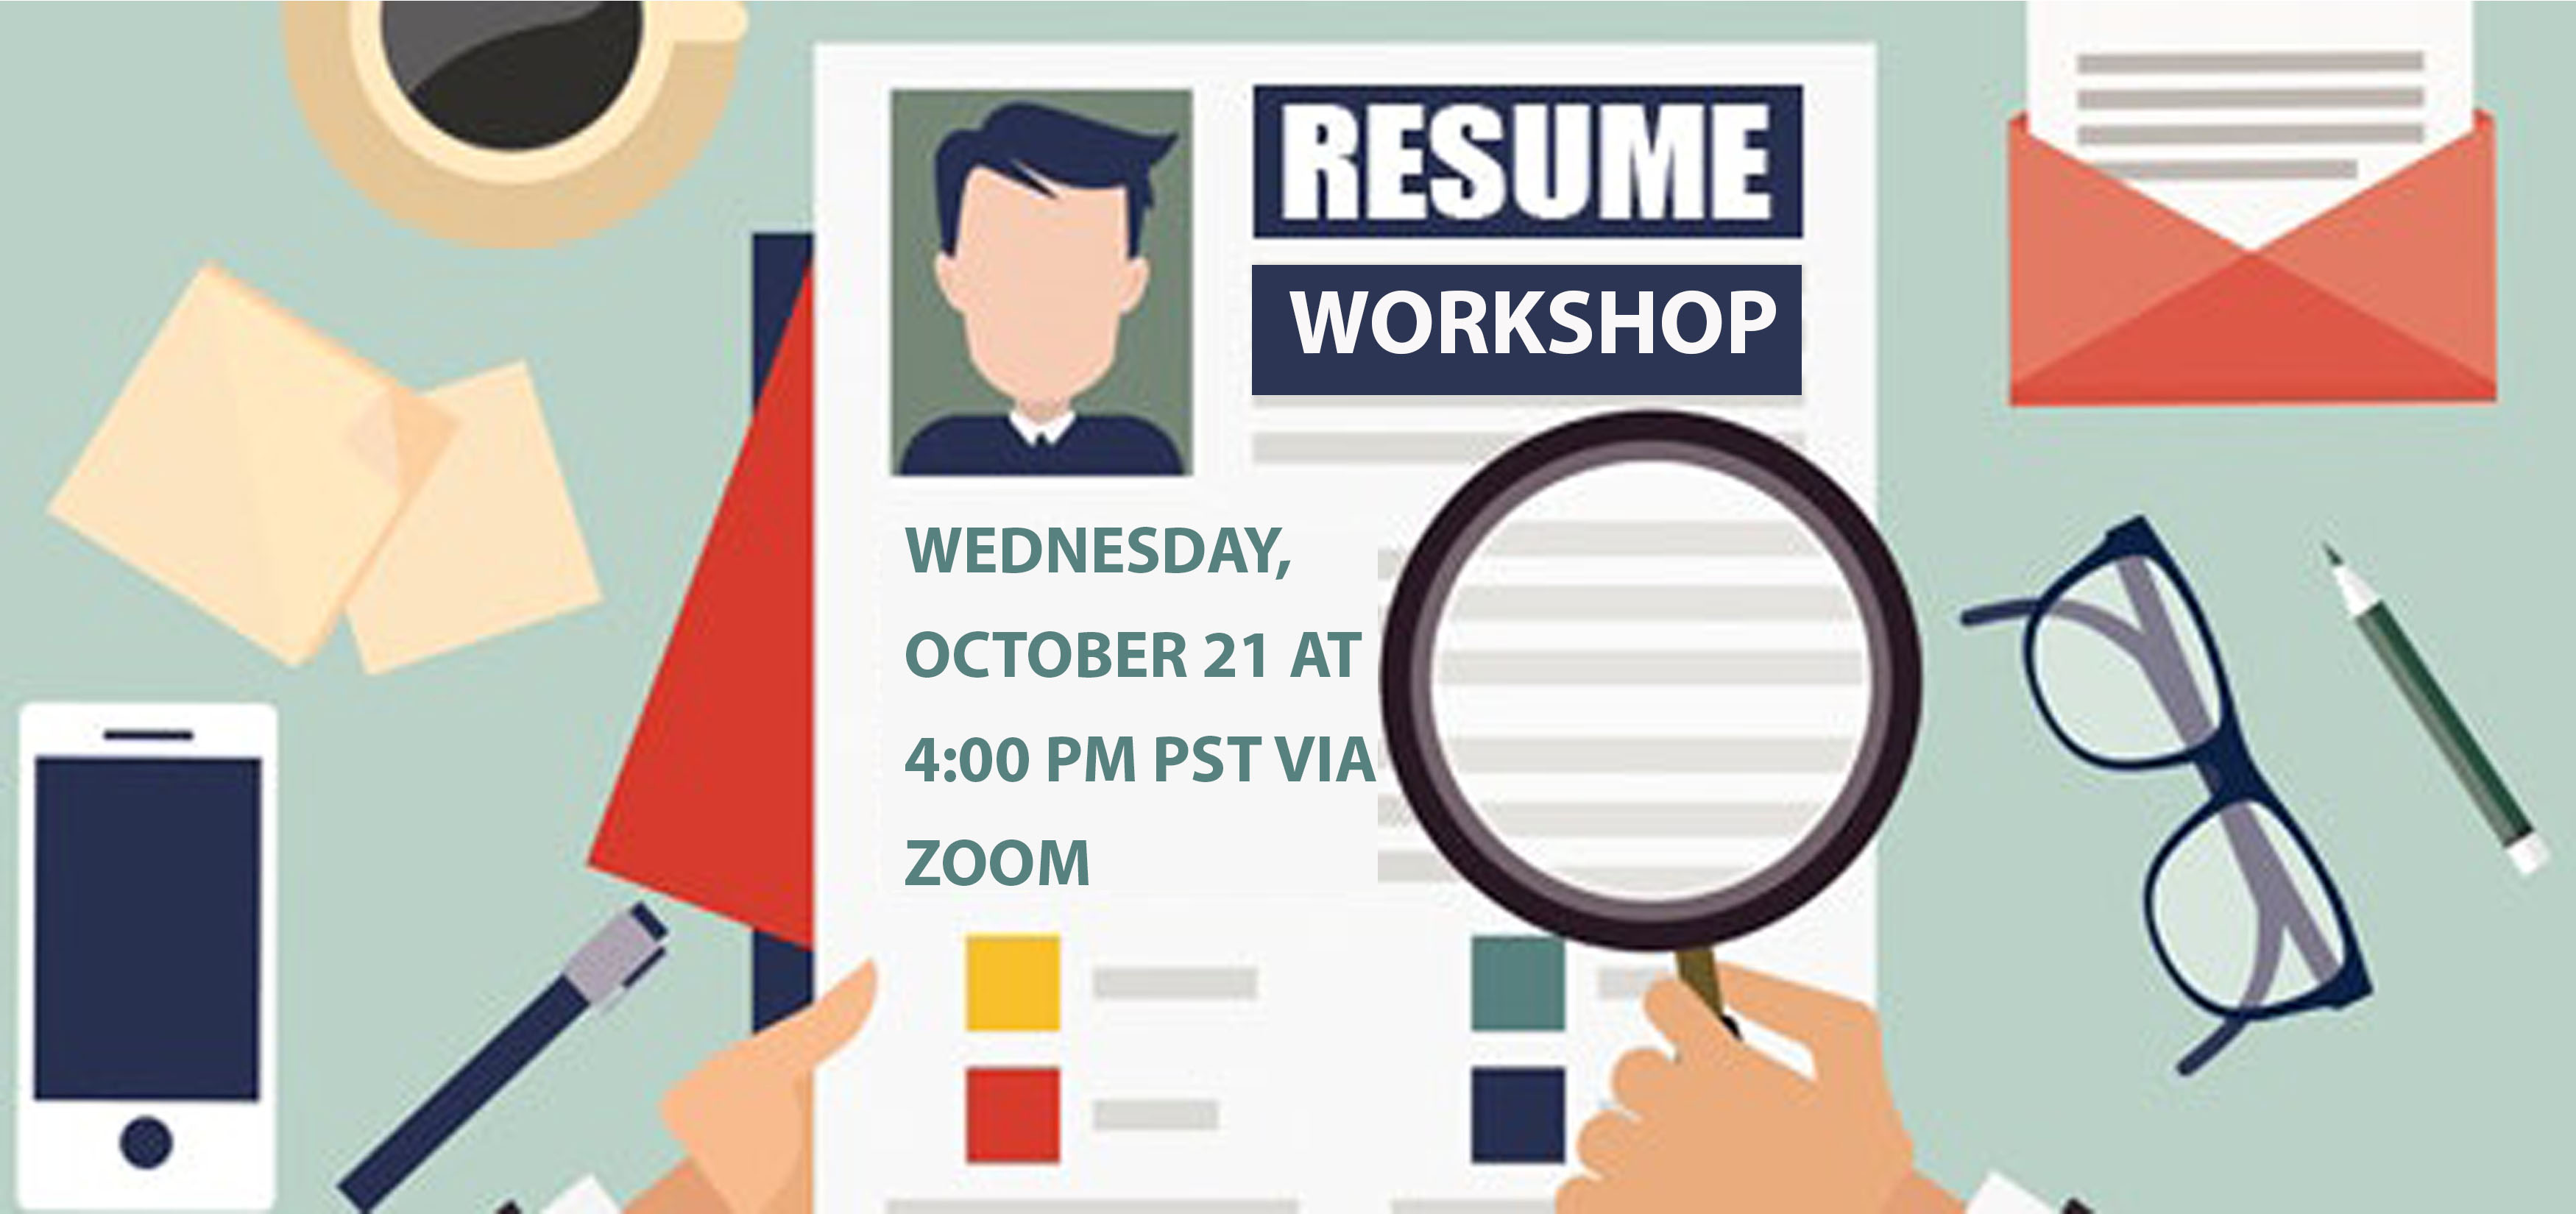 Resume Workshop Poster